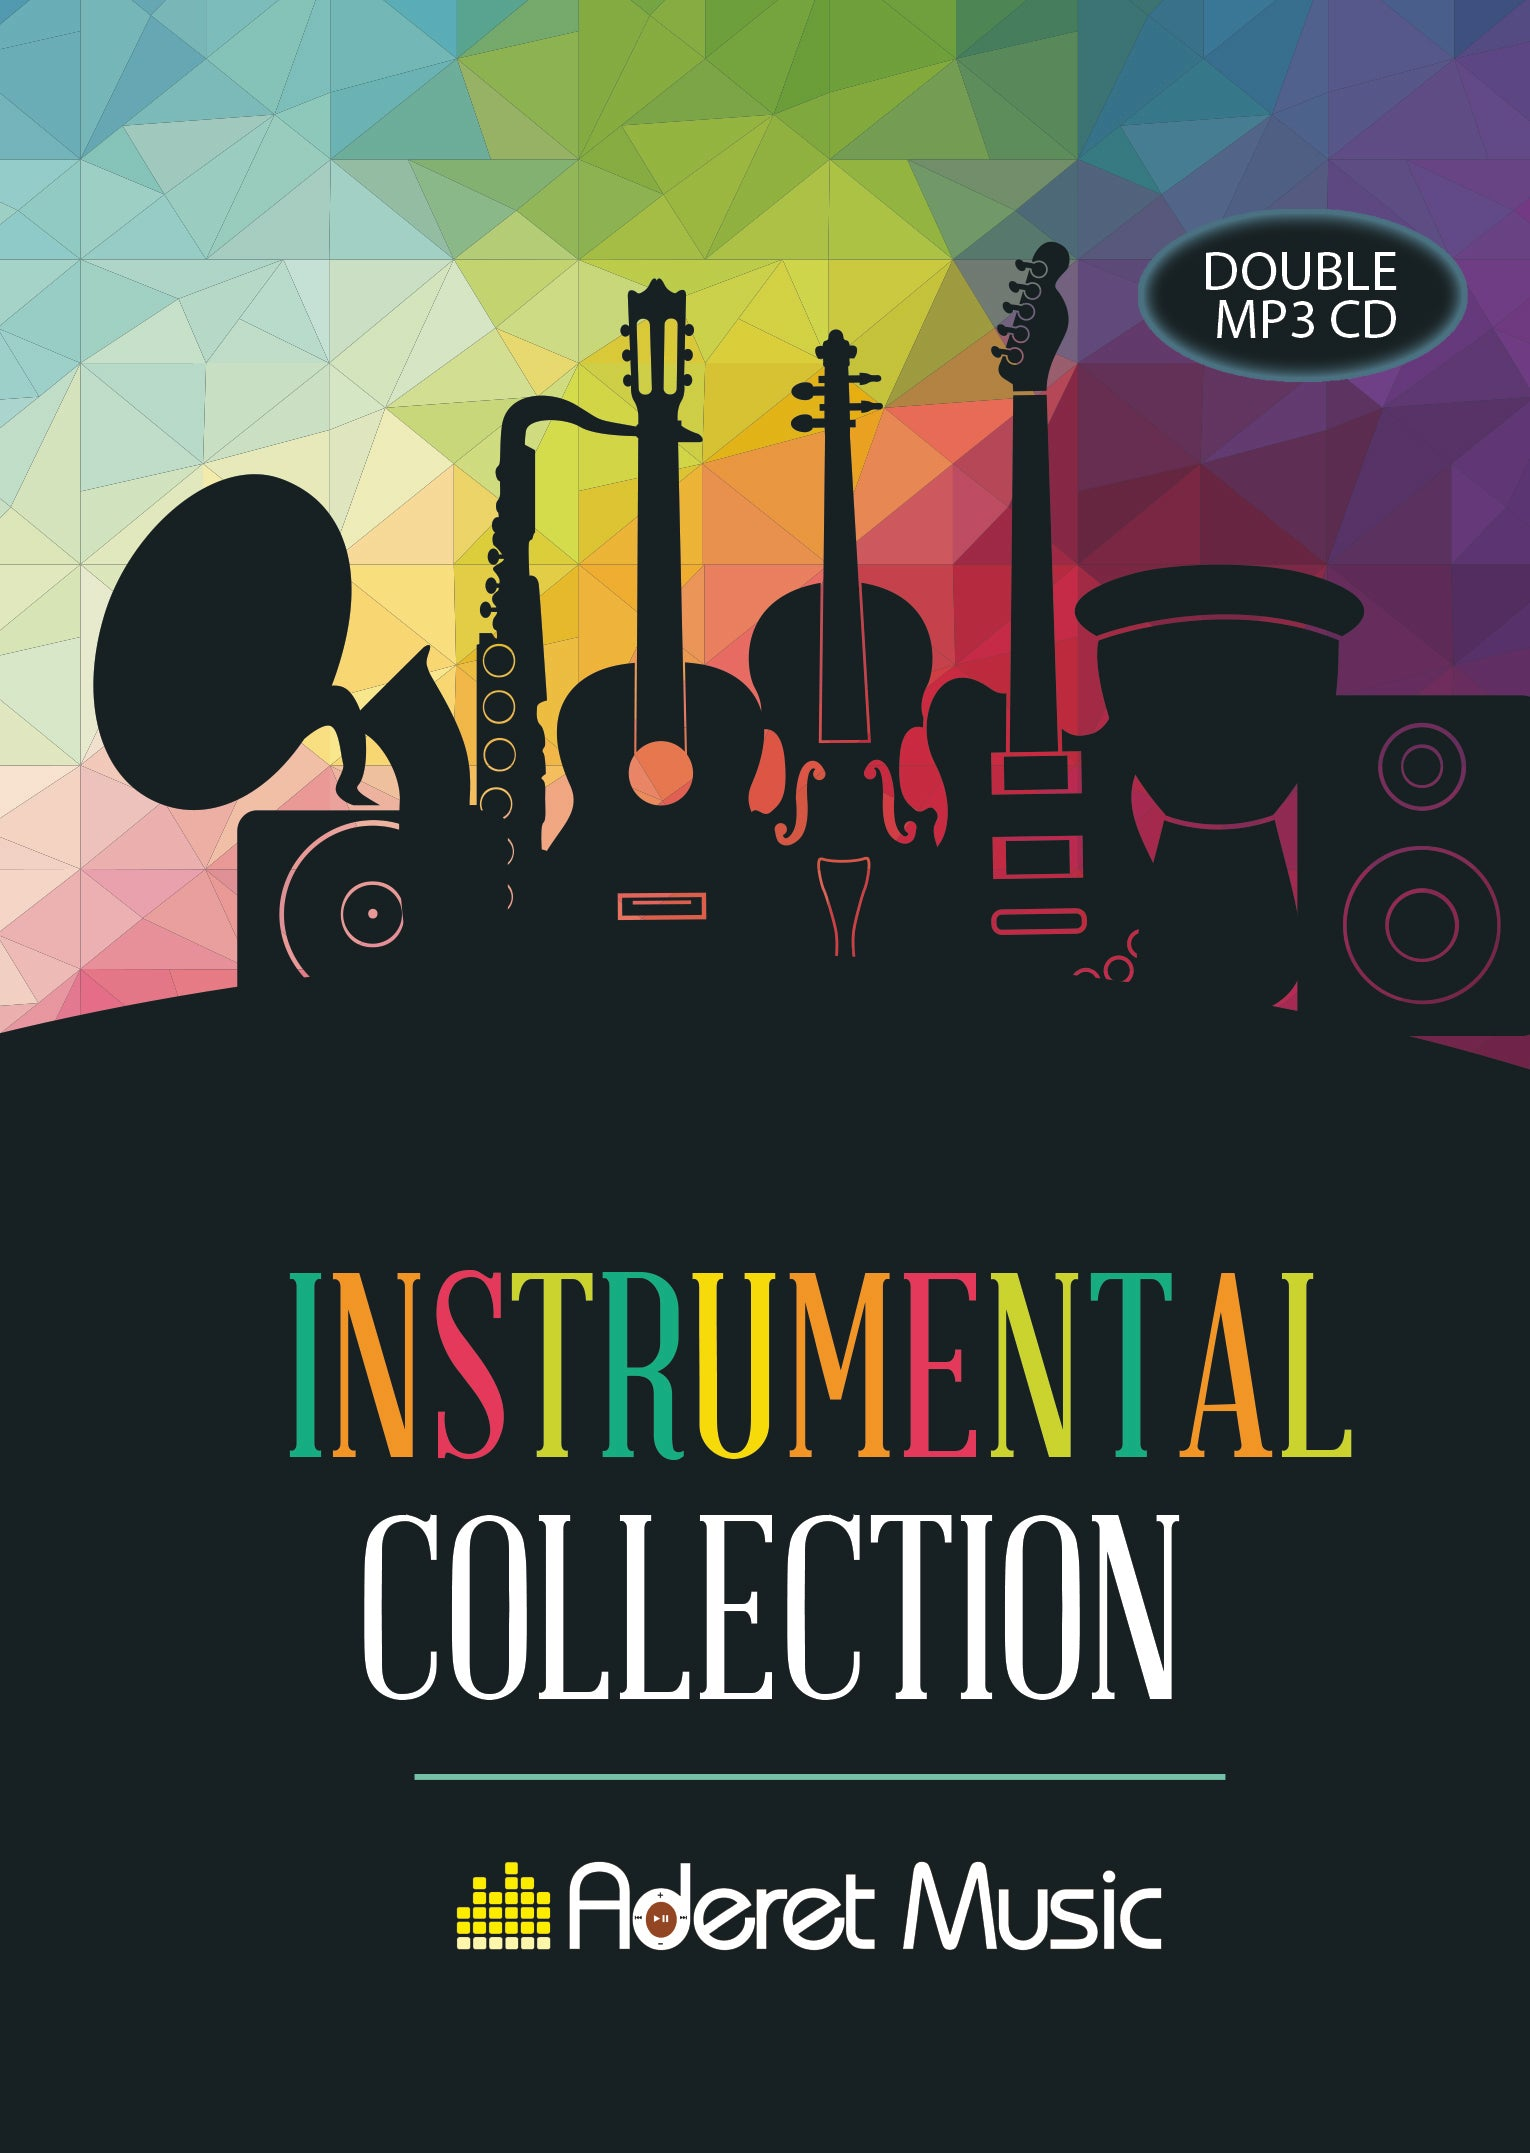 Aderet Instrumental MP3 Collection